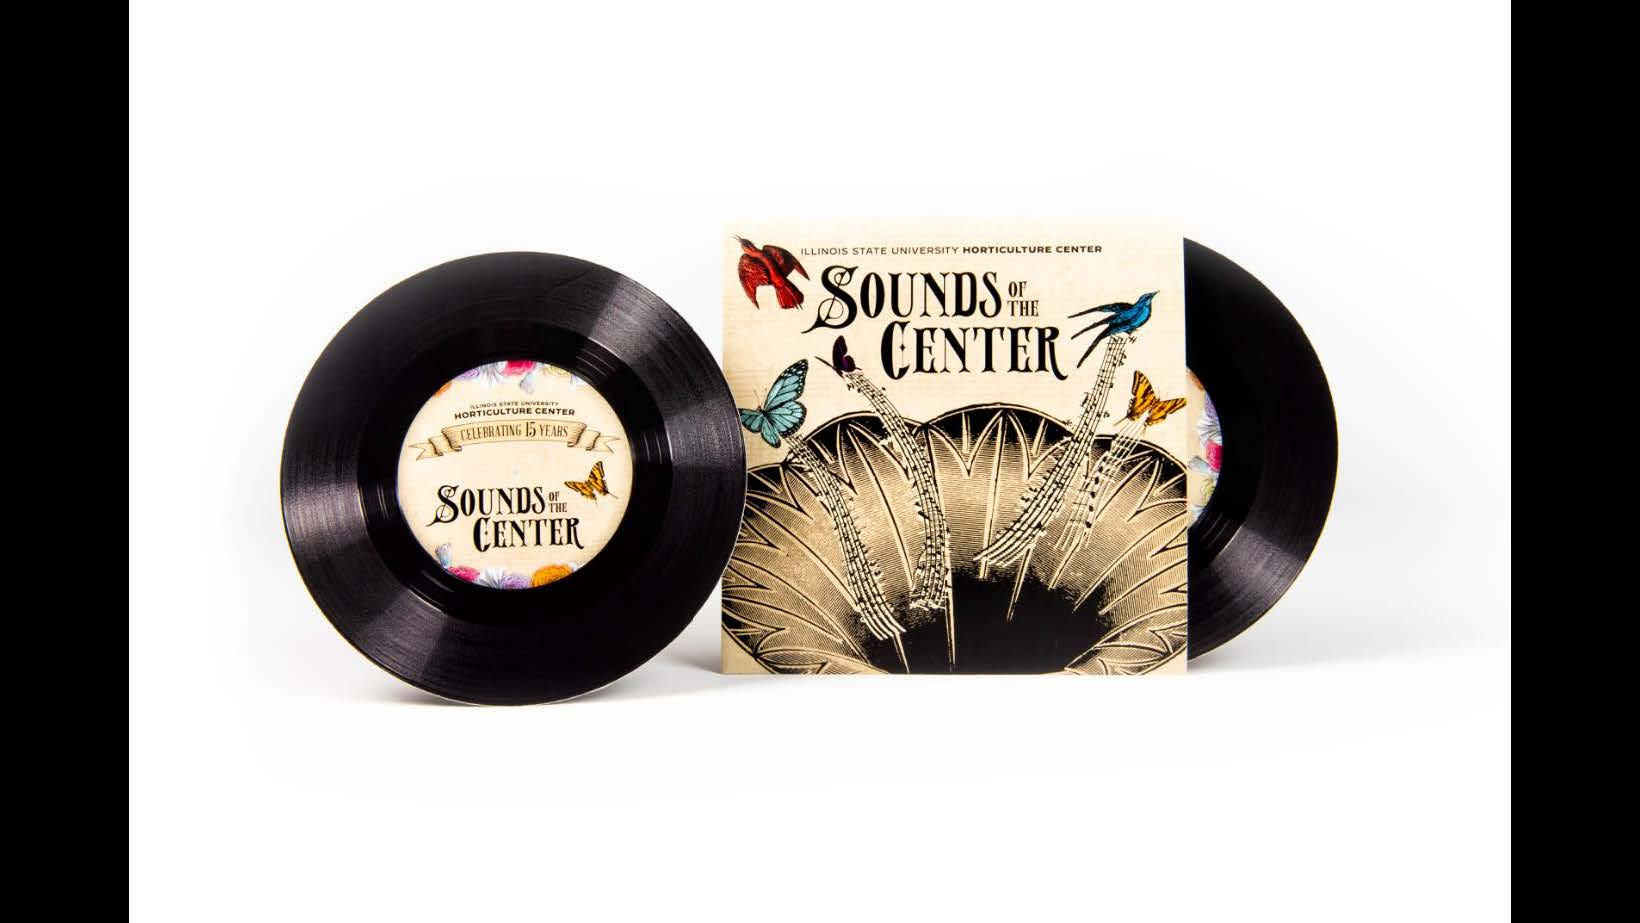 Marketing, Marketing on a Shoestring (Silver): Illinois State University Horticulture Center's Sounds of the Center events marketing materials designed by Jeff Higgerson and Sean Thornton for the Illinois State University Horticulture Center. album and album cover